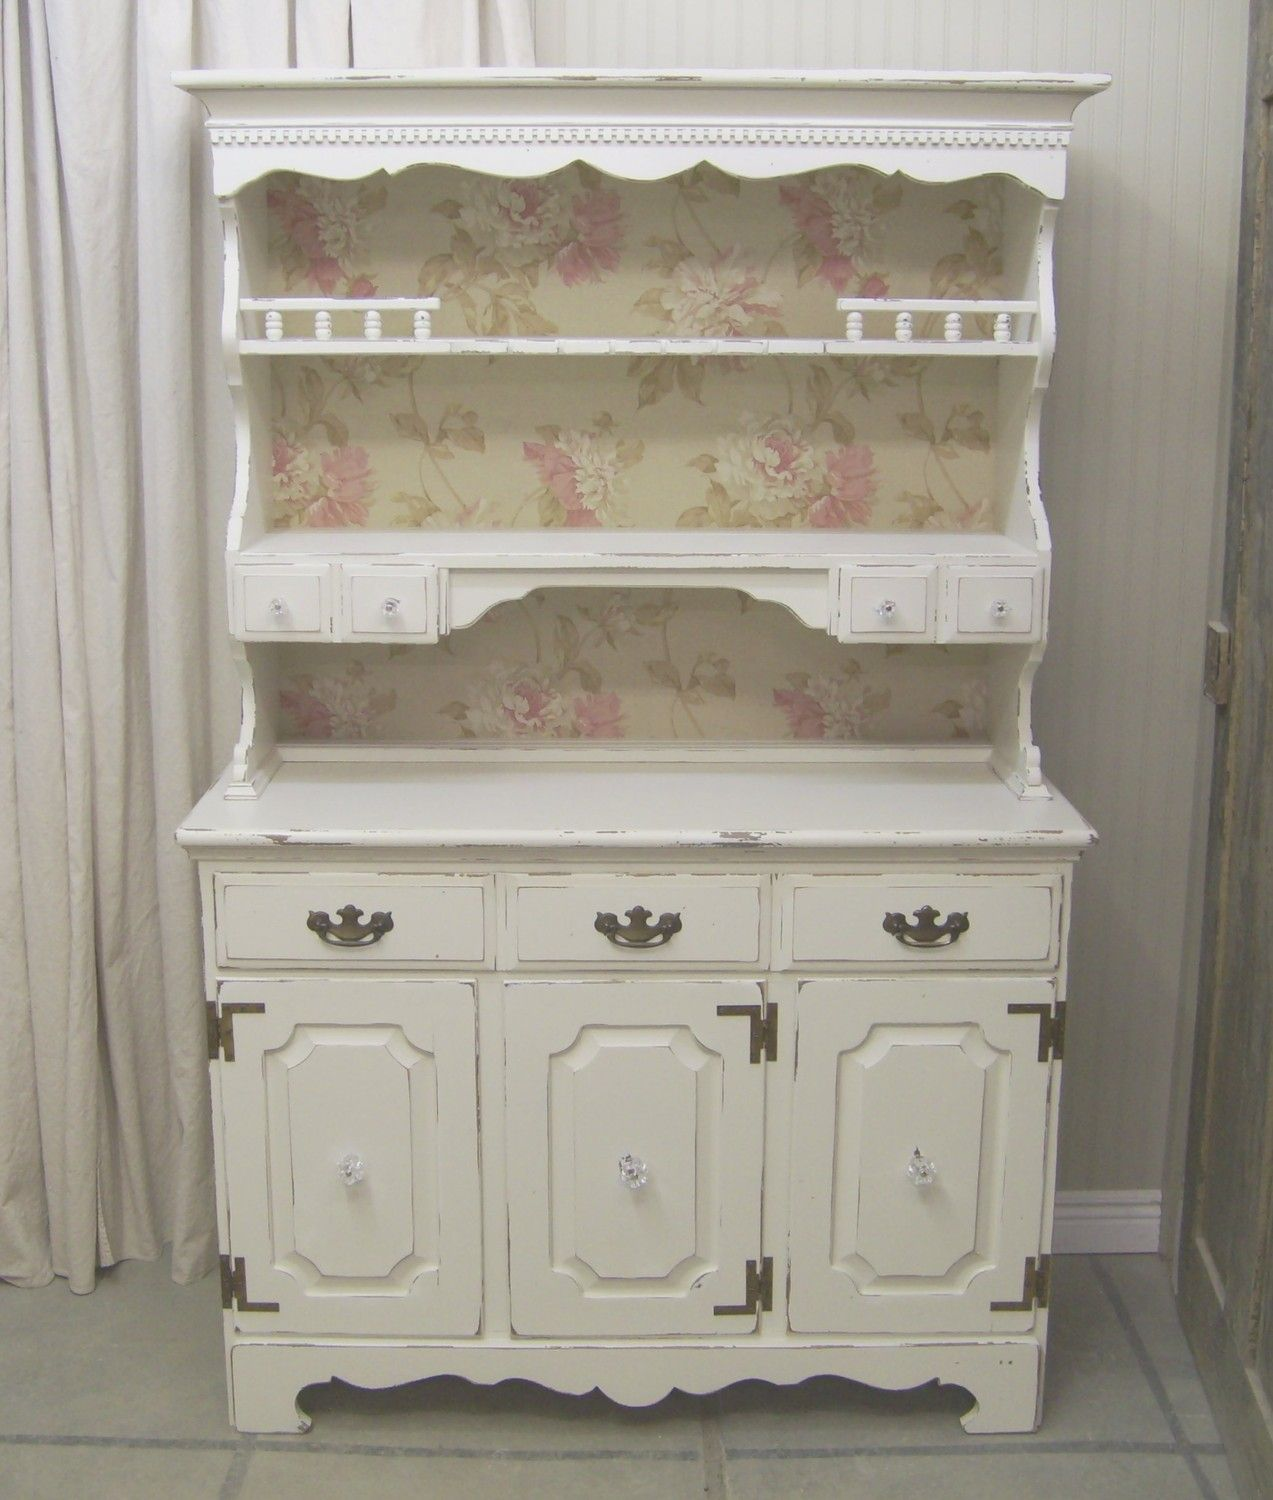 Ive Always Wanted A Hutch